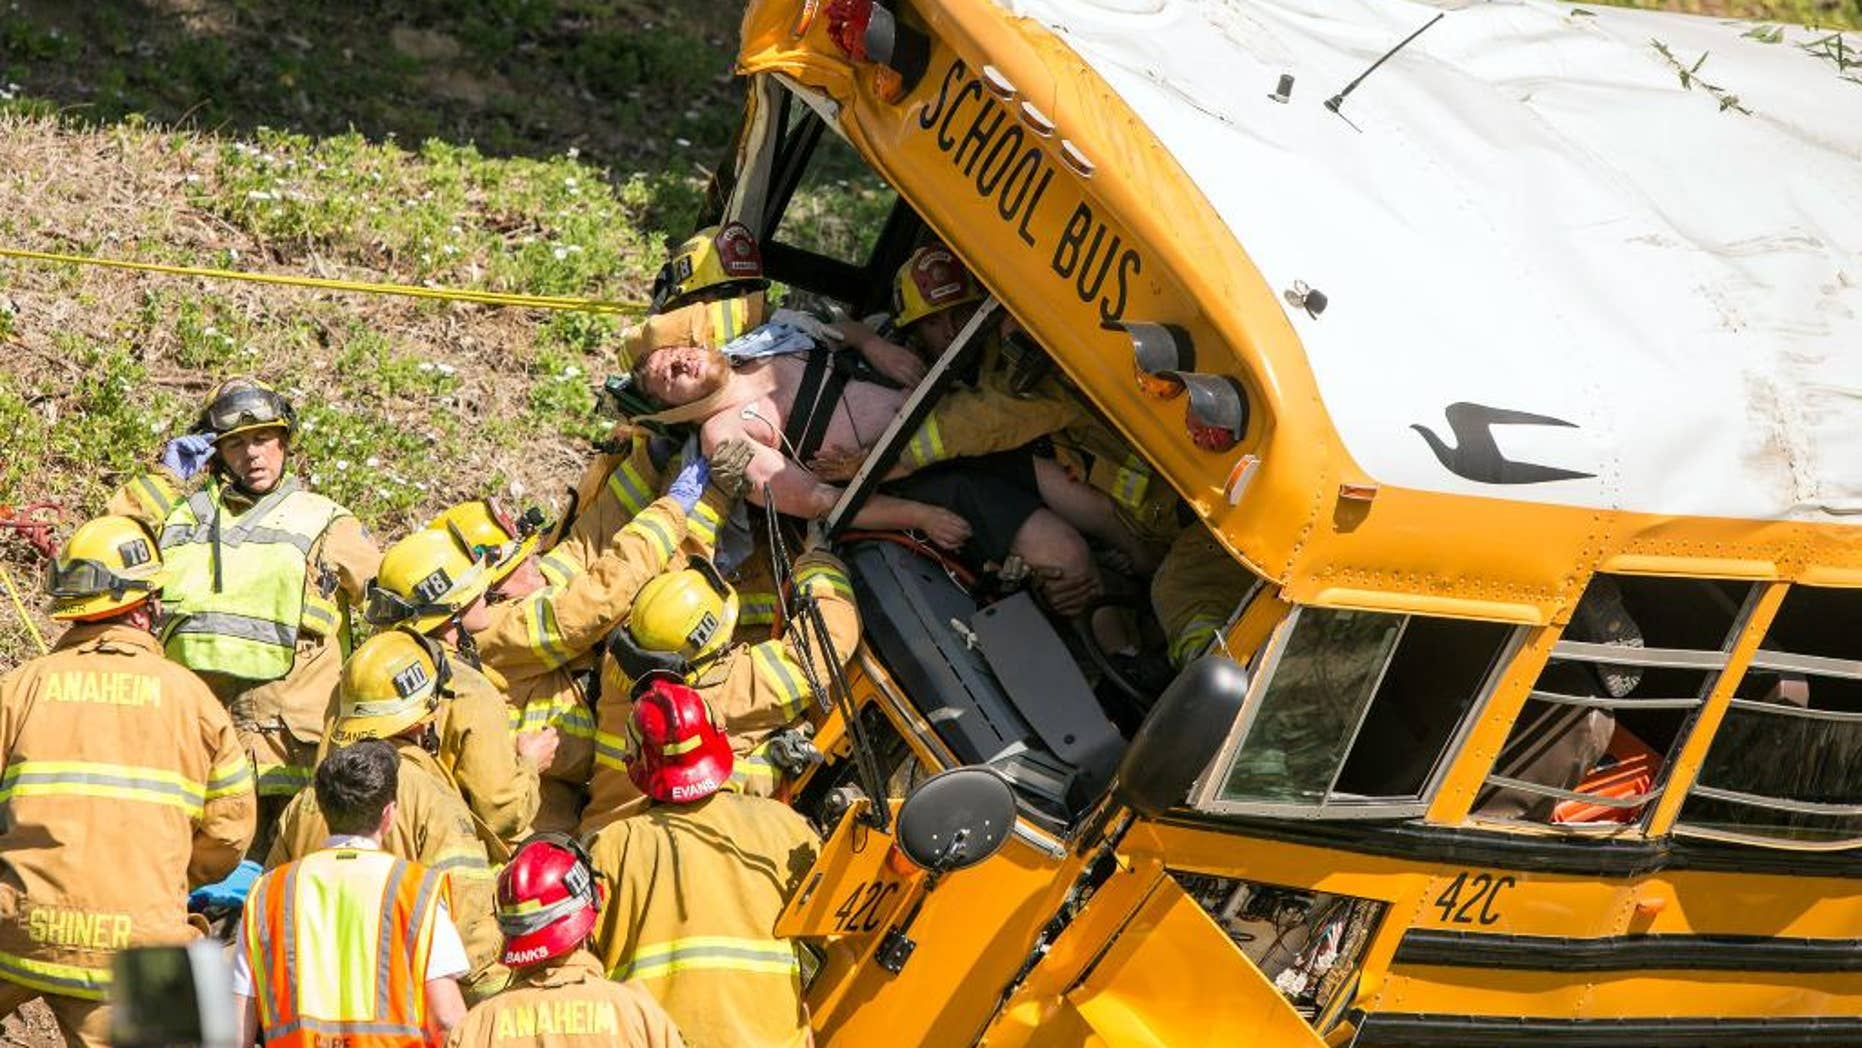 Firefighters extricate the driver from the front of a school bus that crashed, Thursday, April 24, 2014, in Anaheim, Calif. Three of the injured, the driver and two of the children, were taken to hospitals in critical condition after the crash, Anaheim police Lt. Bob Dunn said. The other nine students had minor injuries, and most of them were released to their parents. Police say no other vehicles were involved in the crash and there is no immediate word on the cause. (AP Photo/Kevin Warn)